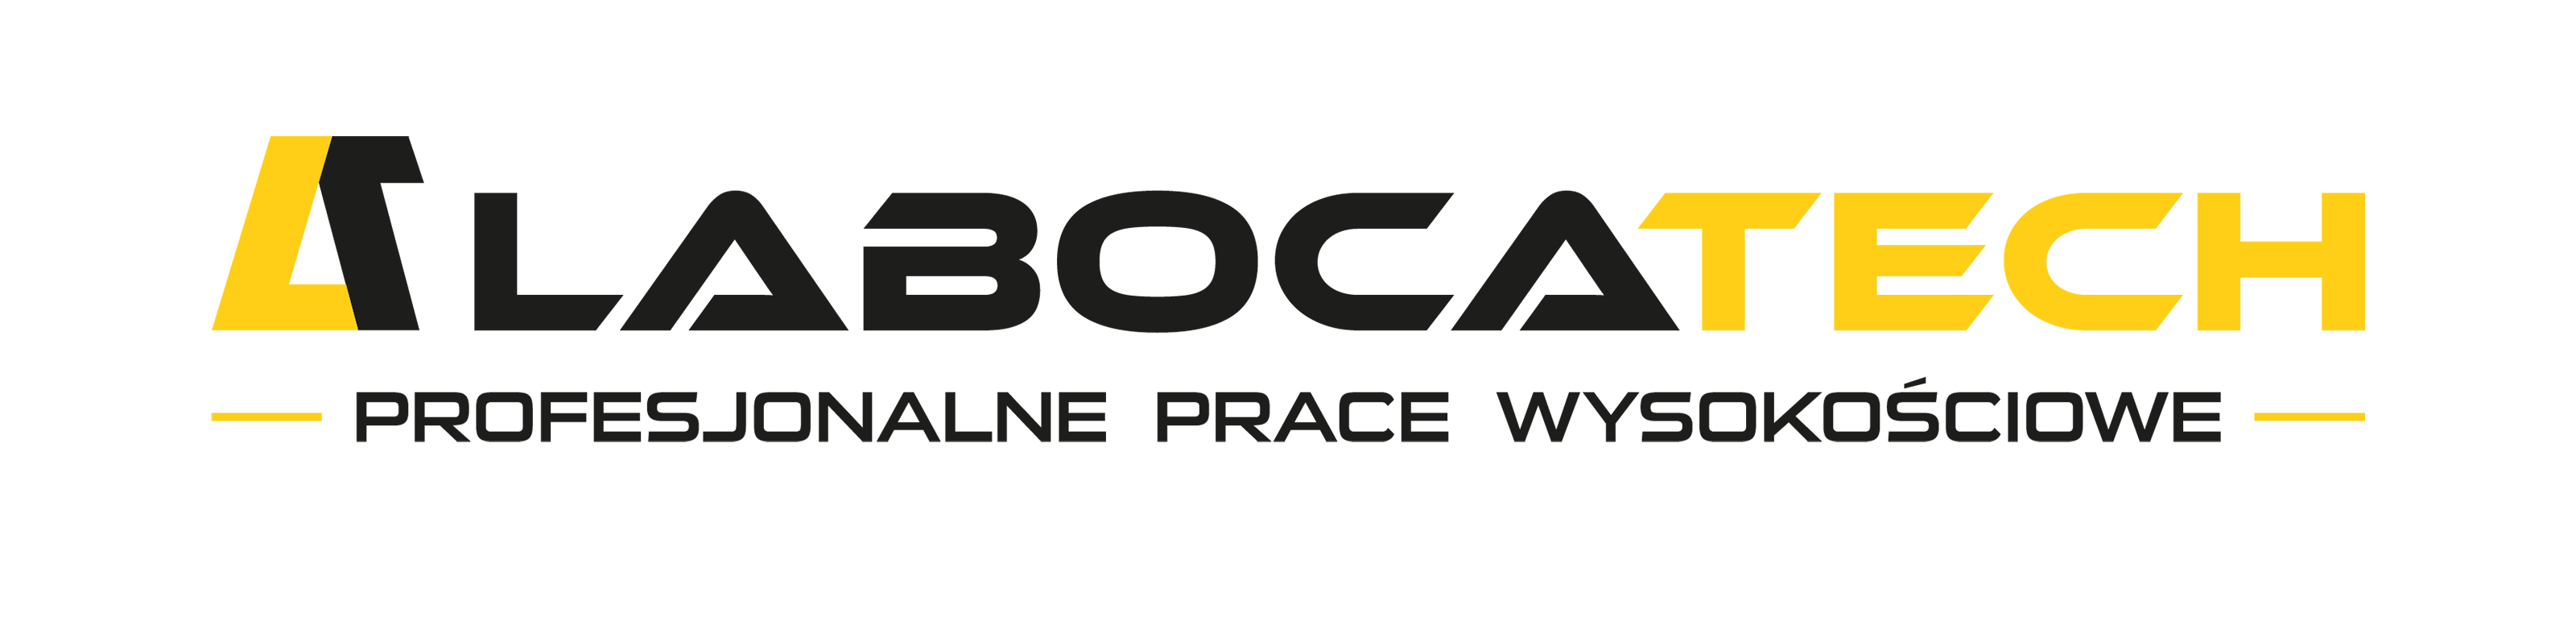 //labocatech.pl/wp-content/uploads/2015/09/laboca_tech_logo_png_white.png